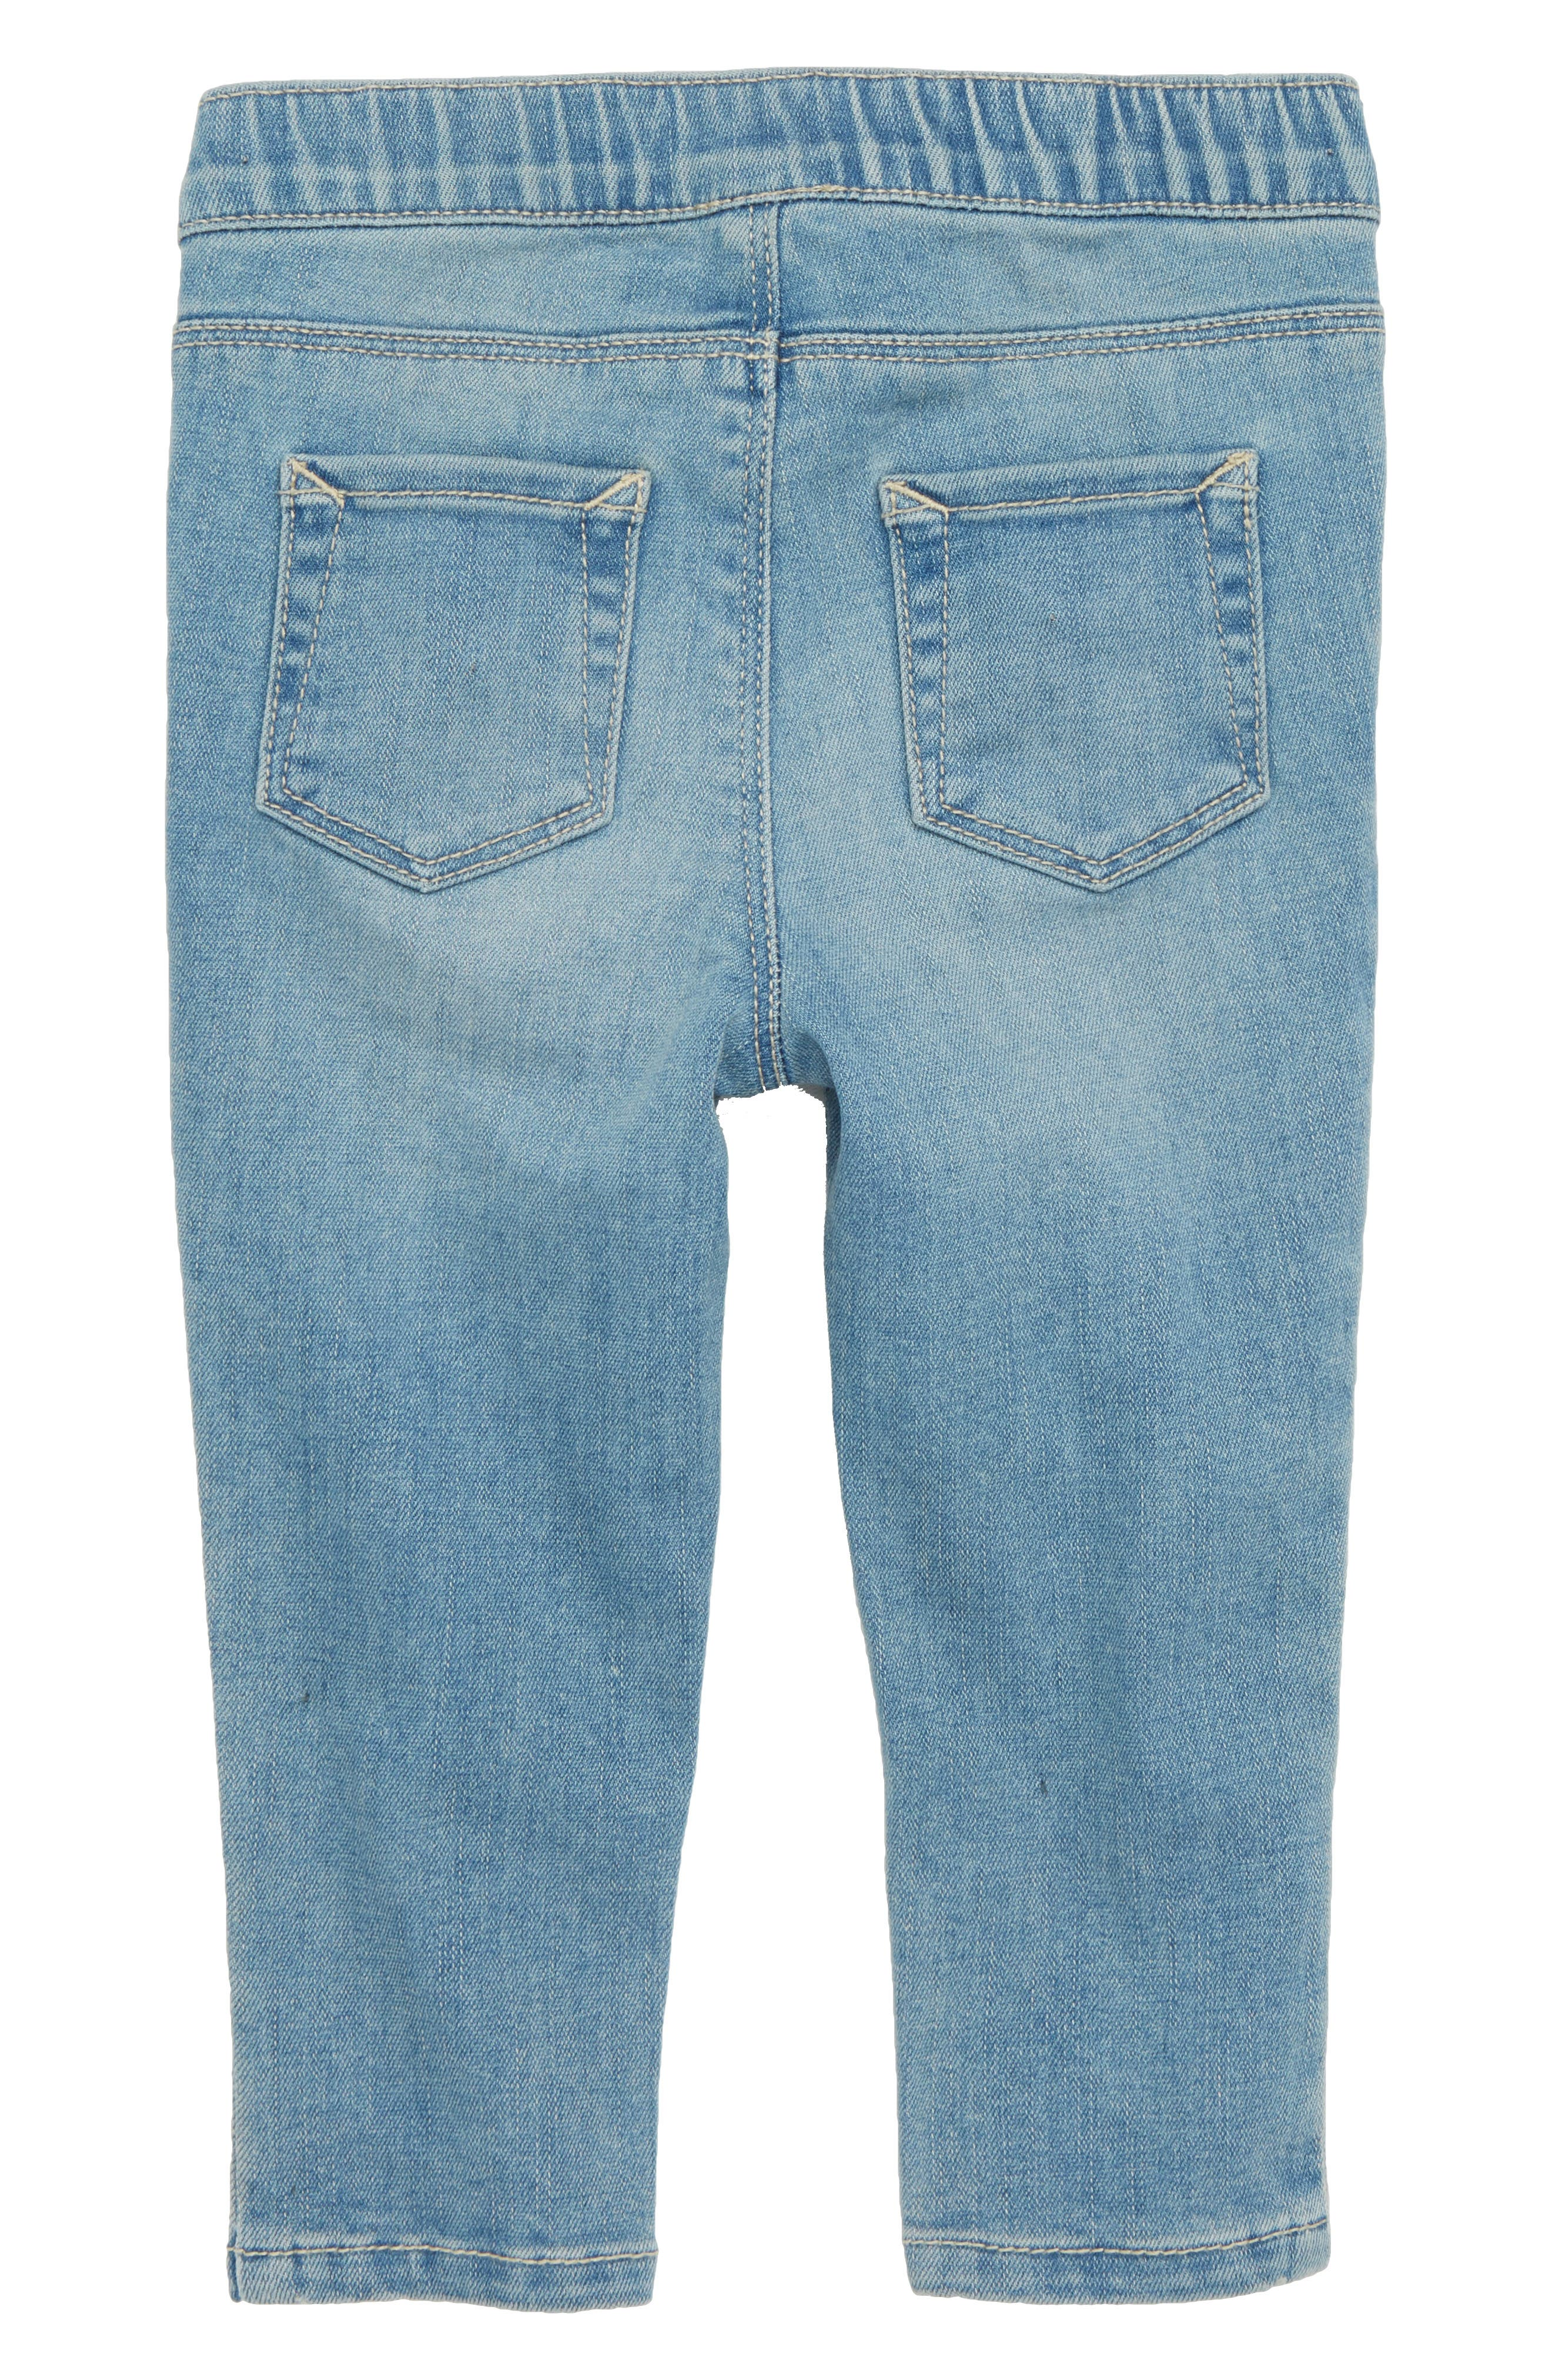 Star Patch Skinny Jeans,                             Alternate thumbnail 2, color,                             450